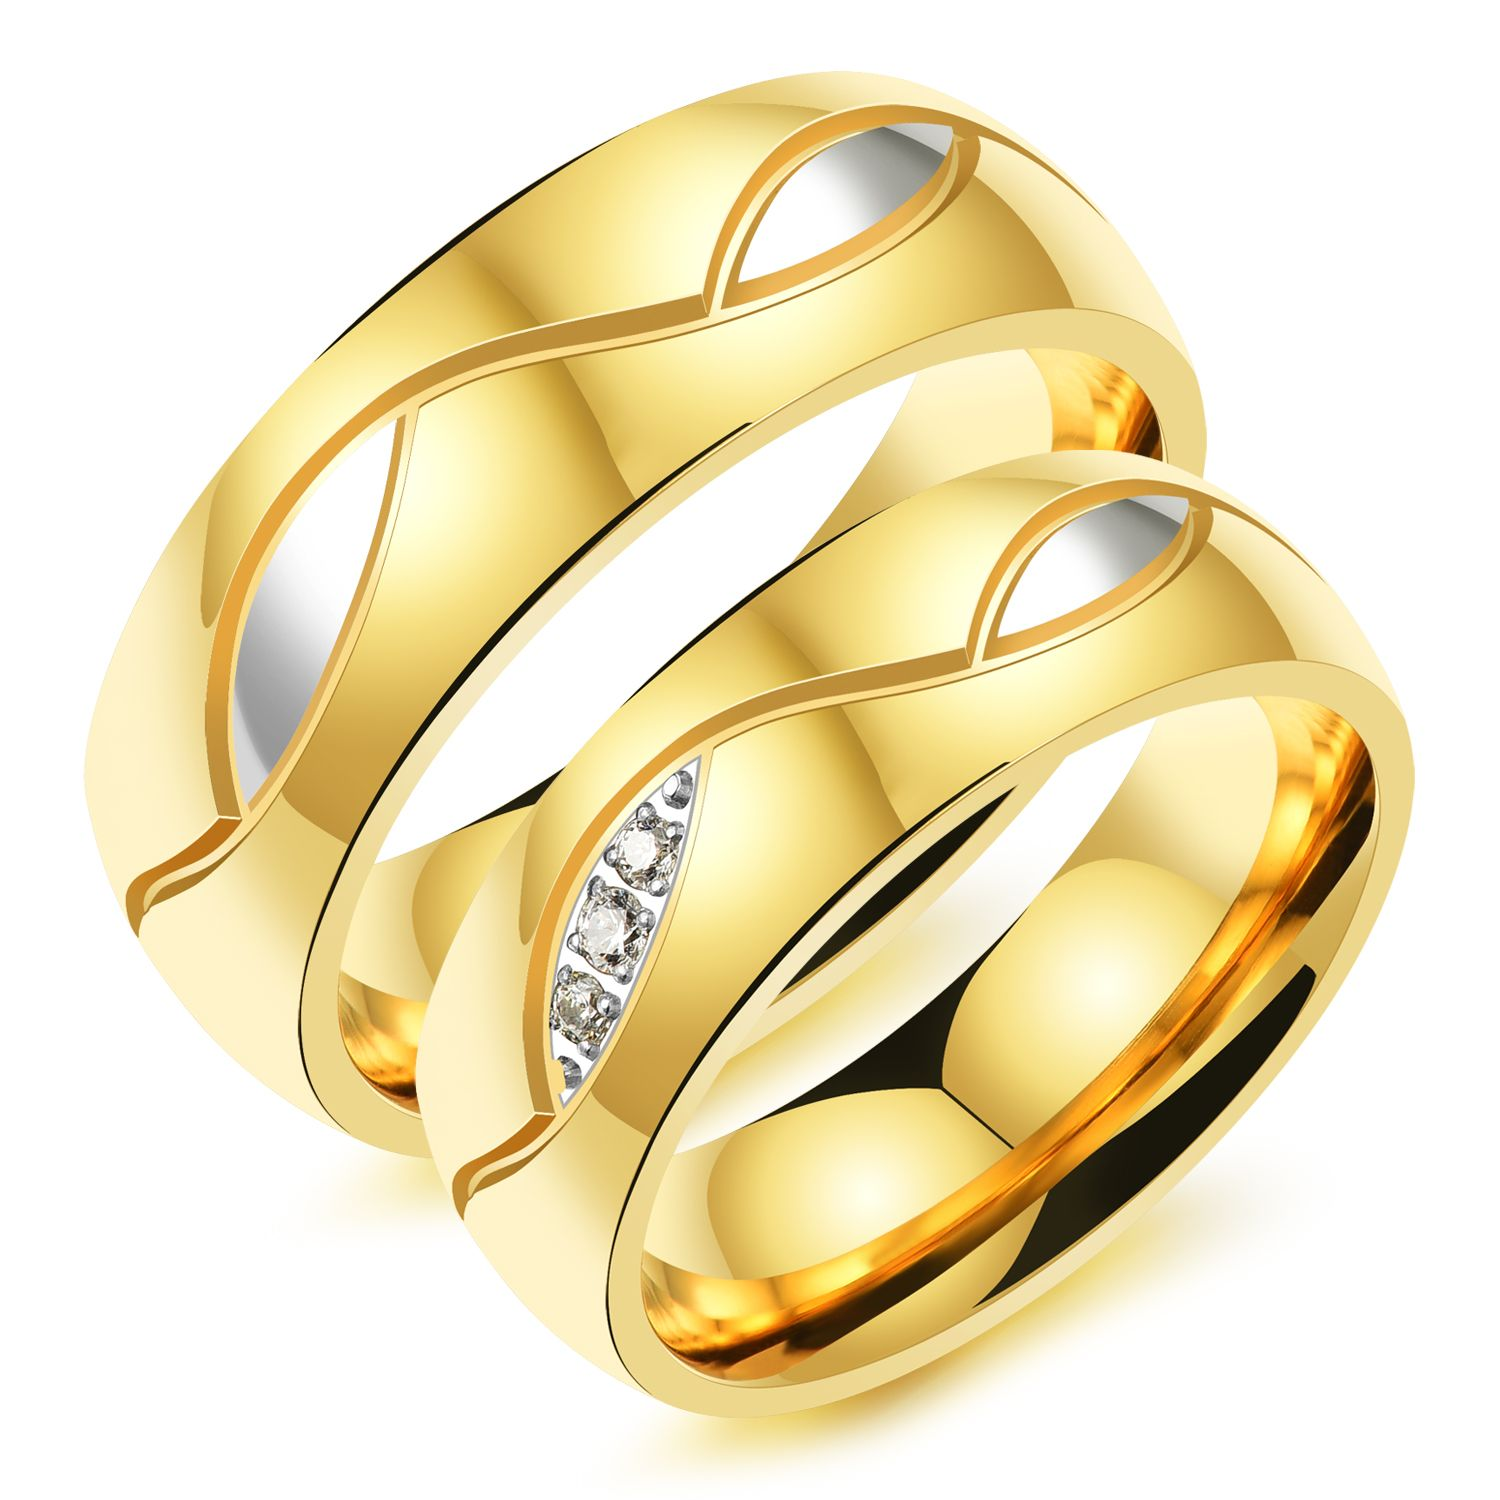 wedding steel font korean stainless golden design ring with b unique korea style rings leaf cute gold